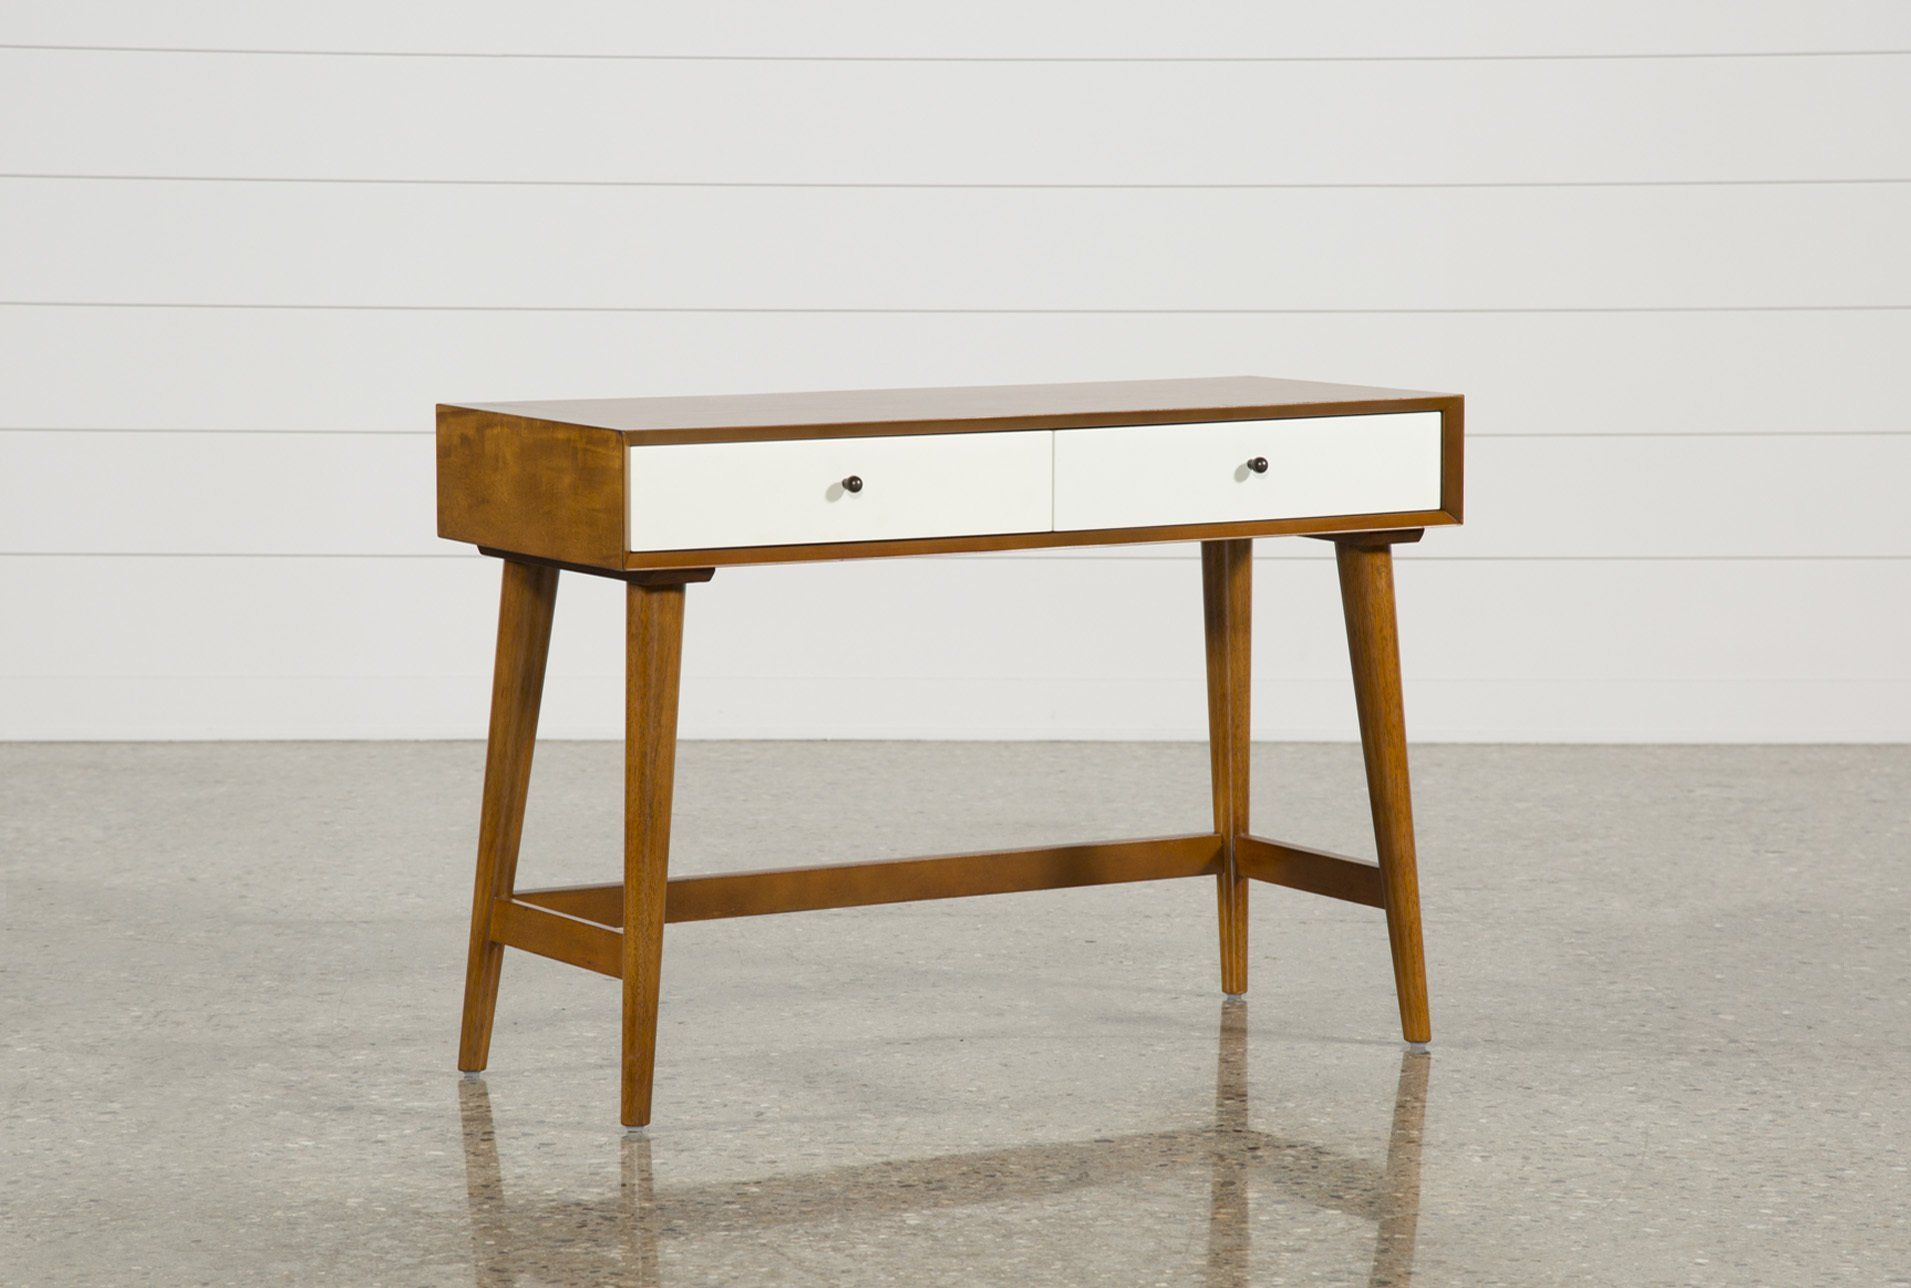 alton accent writing desk desks night table natural clear console white cube bedside summer clearance patio furniture chair dining target kindle fire wood and iron side marble